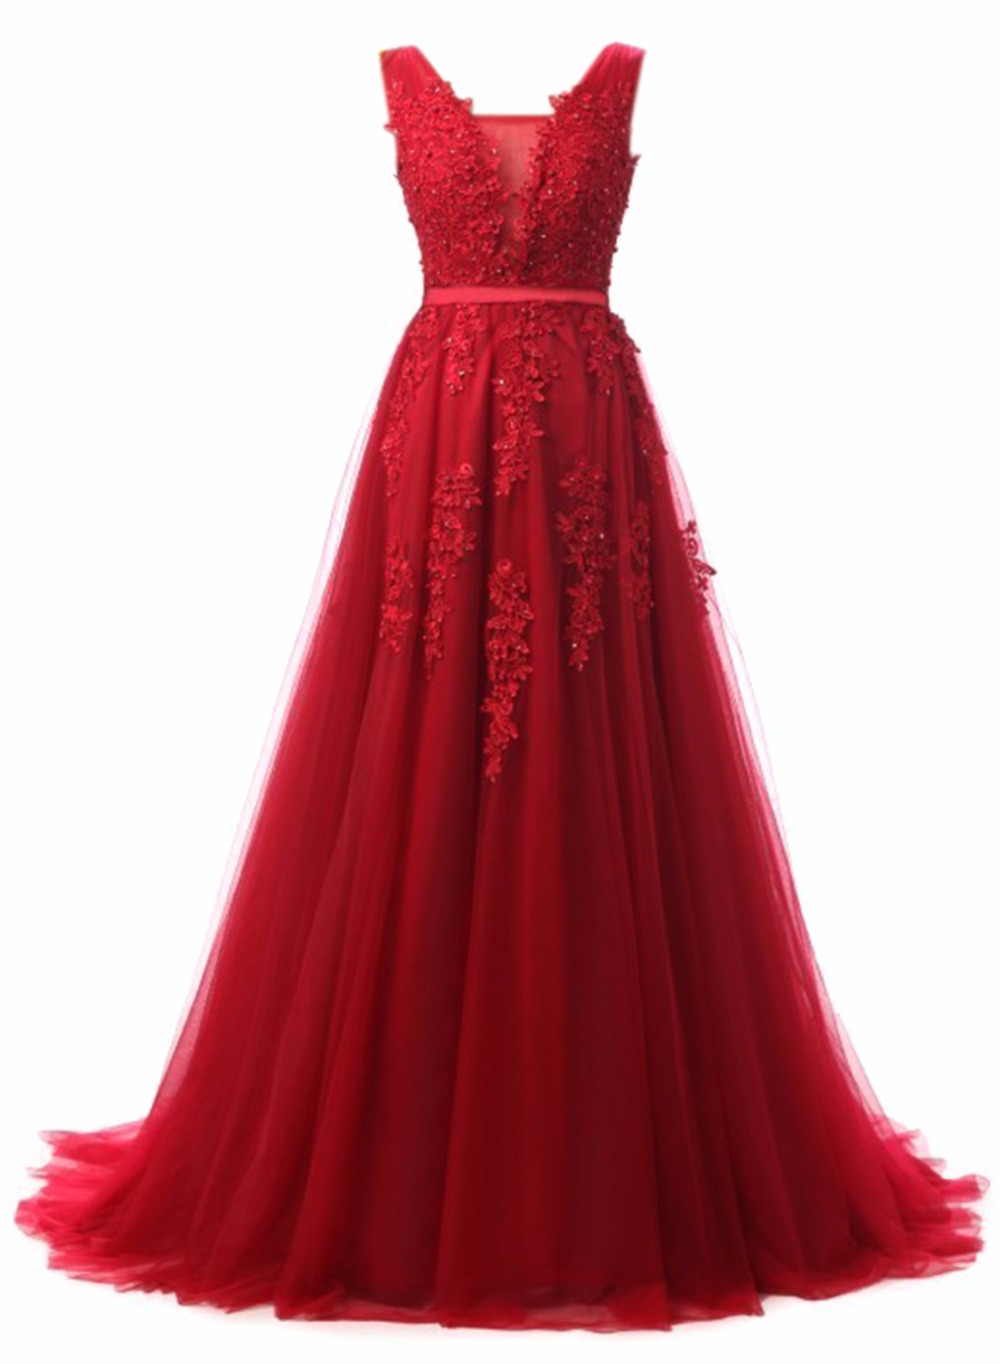 Bealegantom 2018 New Cheap Pink Red Blue Prom Dresses Beaded Plus Size  Formal Evening Party Gowns Vestido Longo QA1499 e60f25b50381